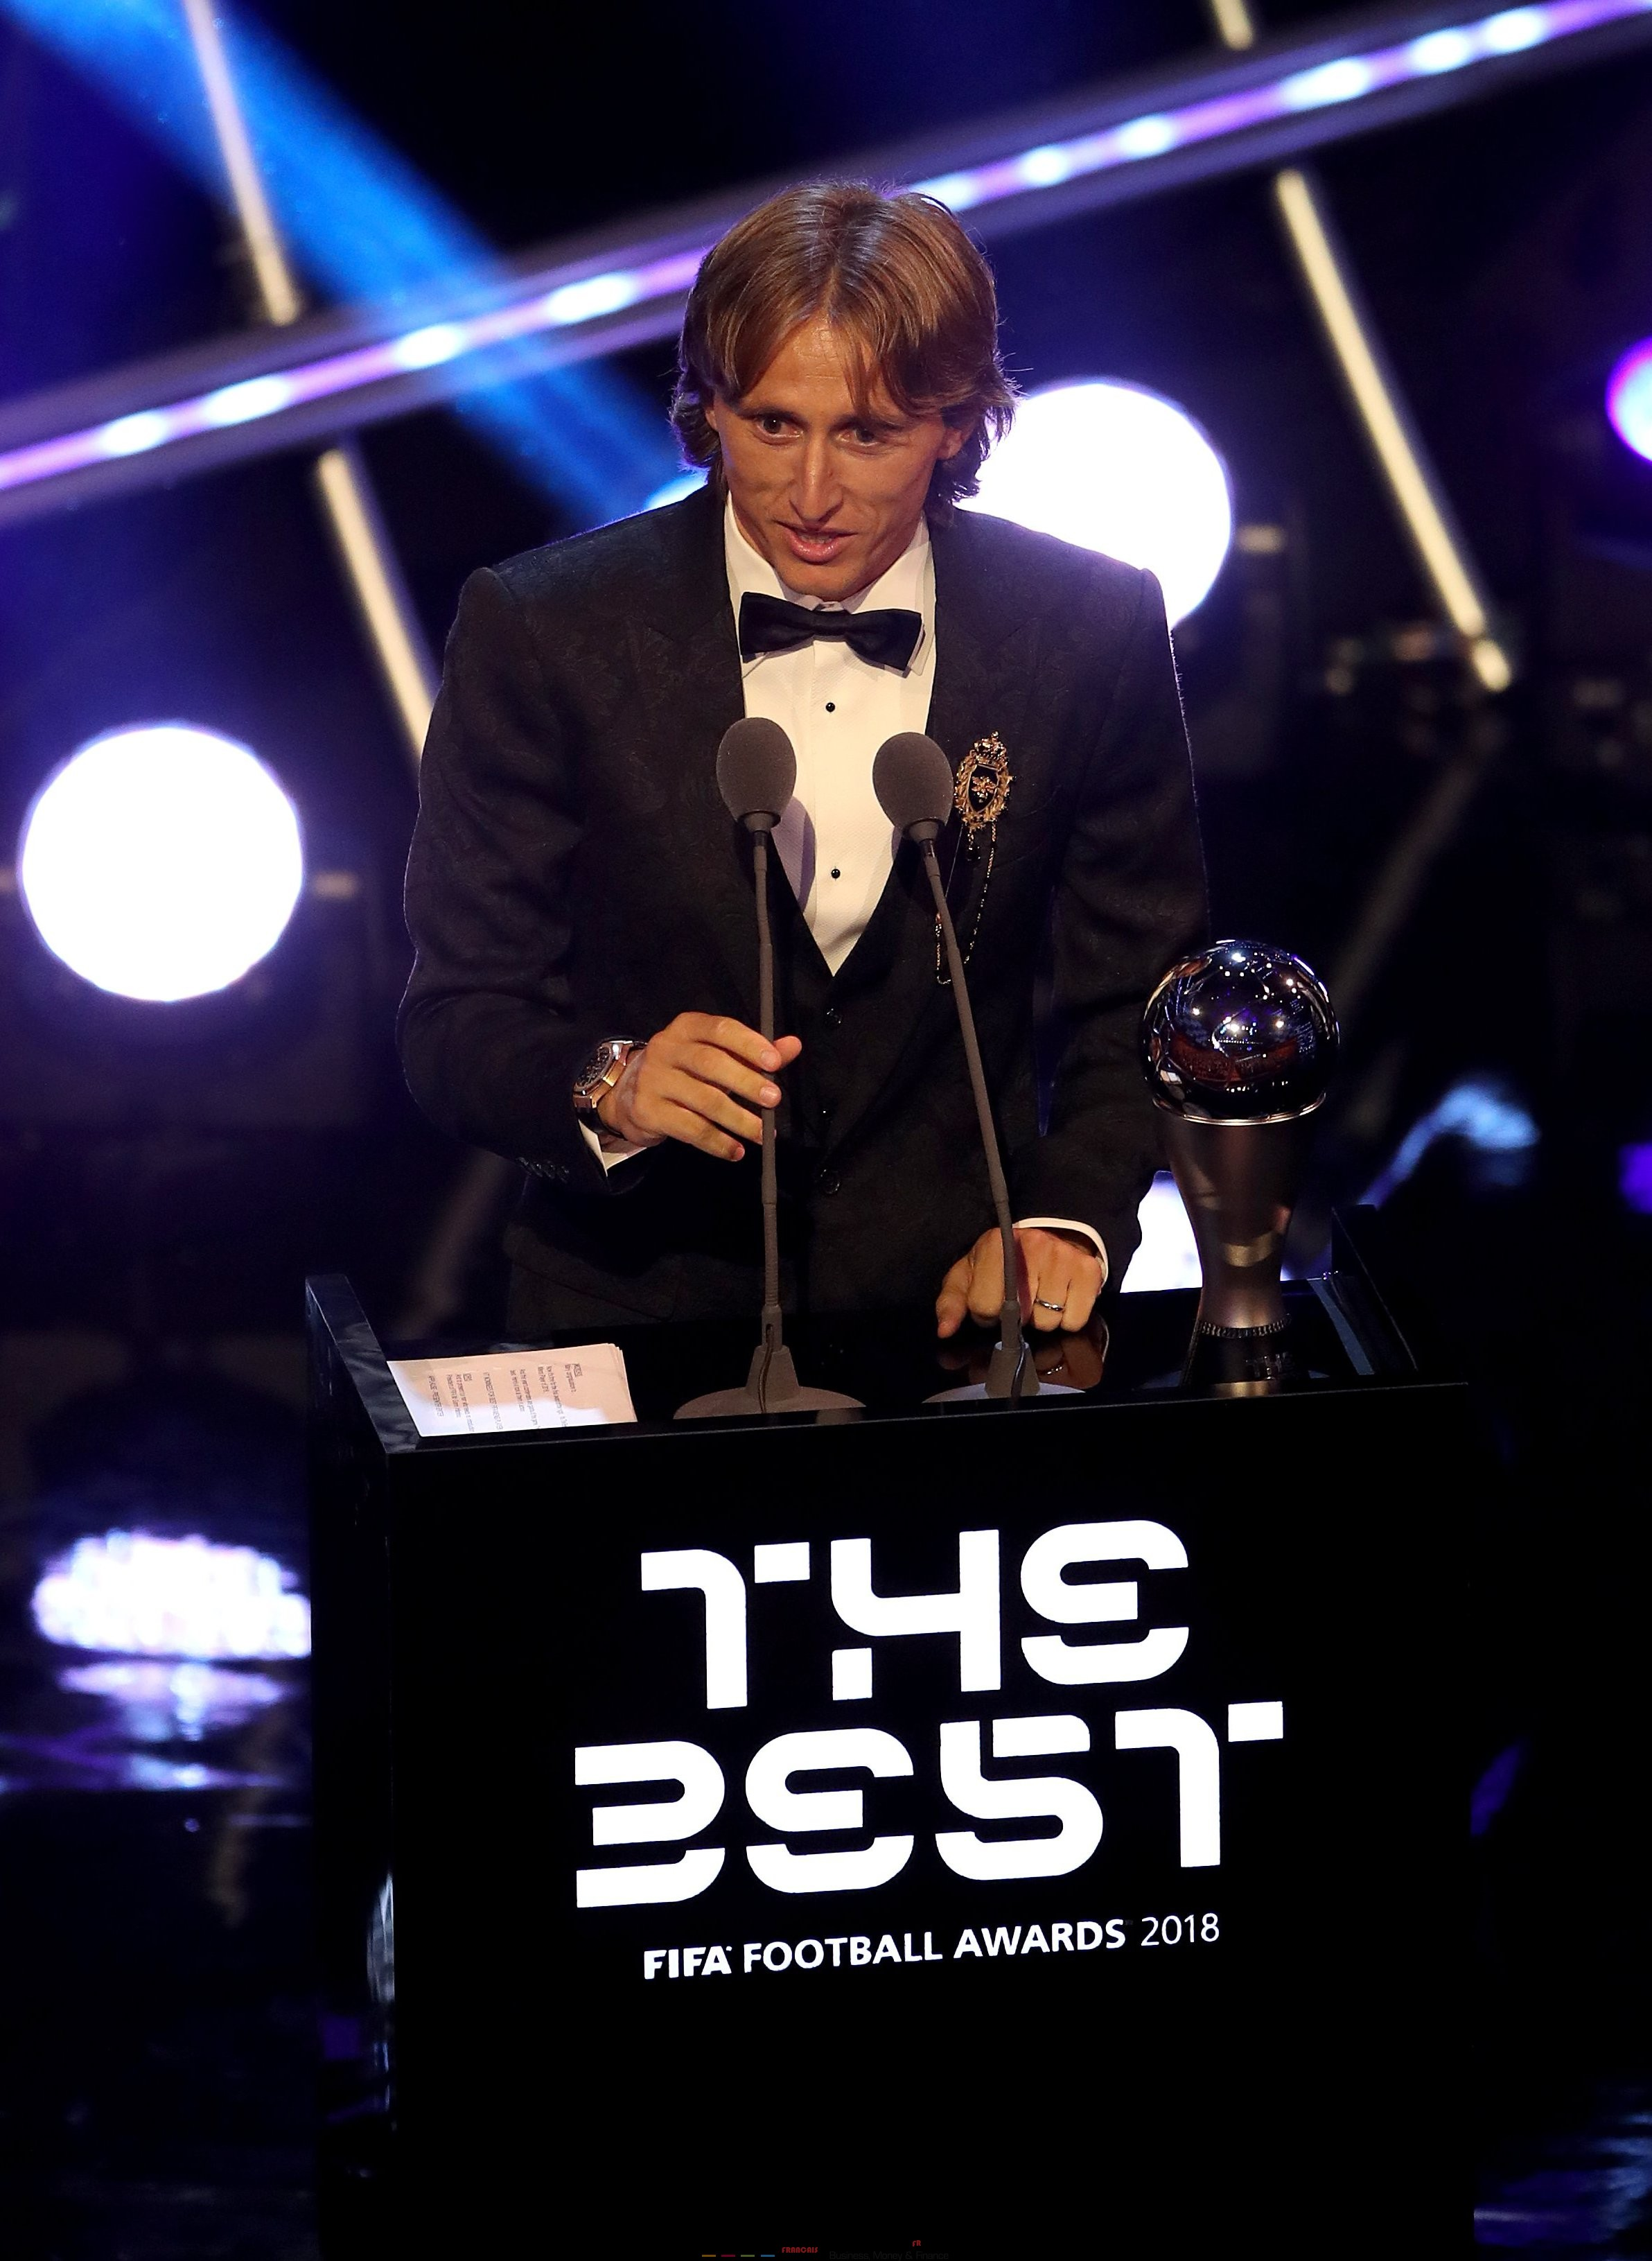 The Best FIFA Football Awards 2018 in London 2